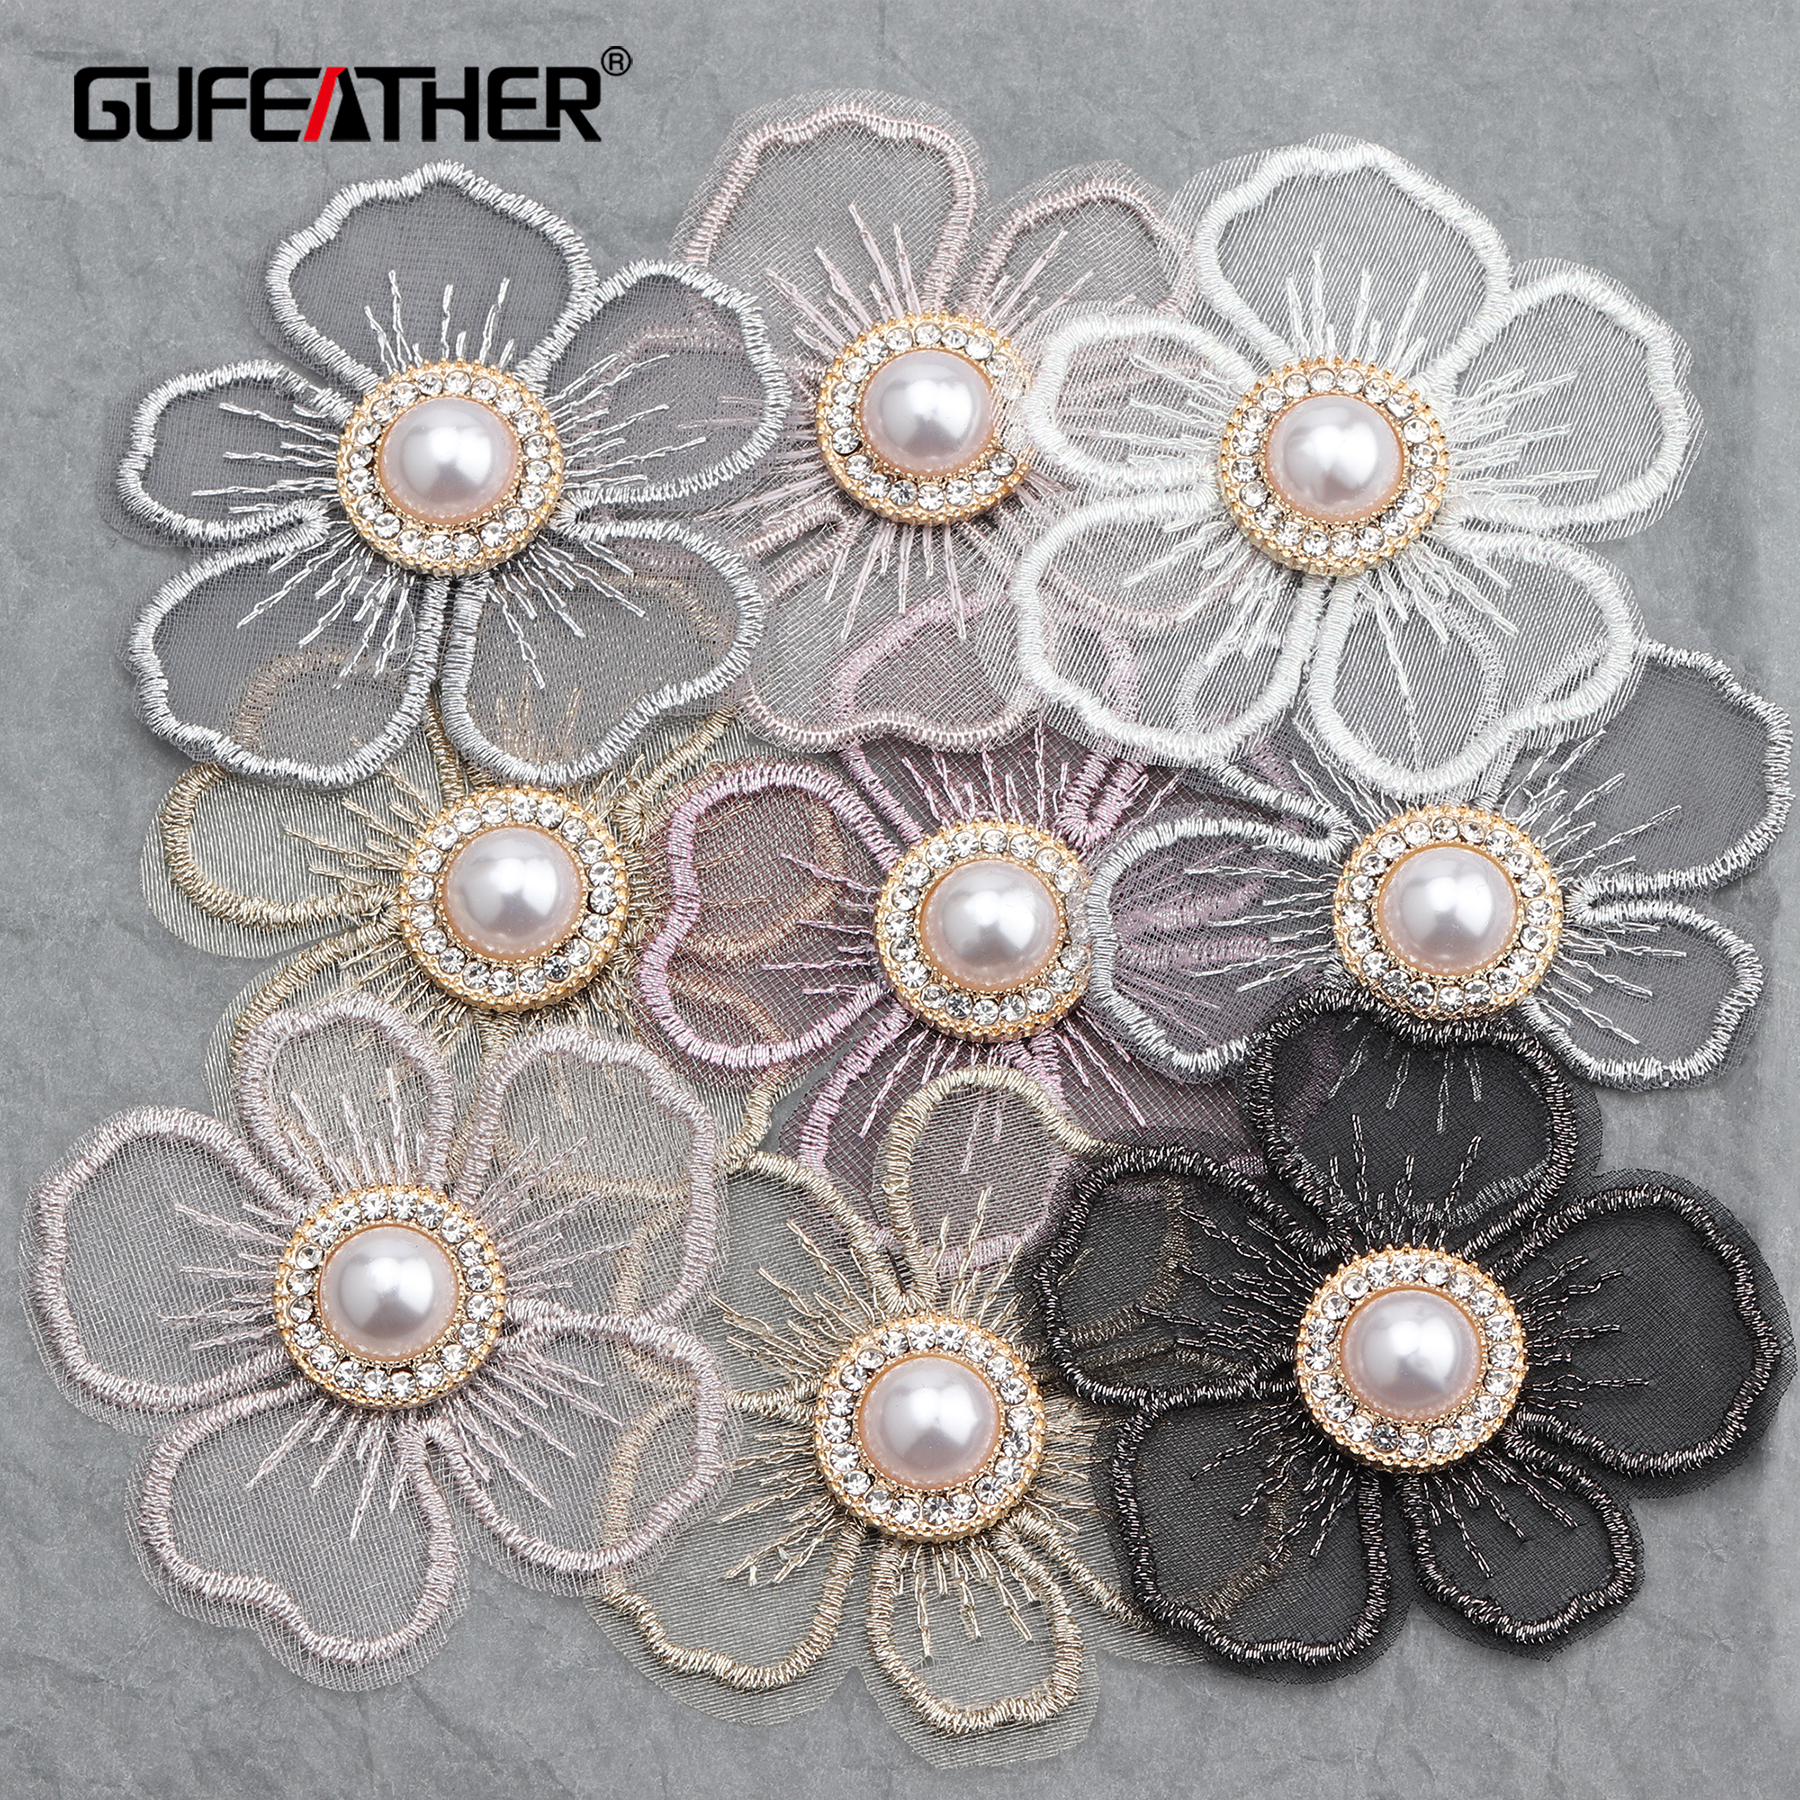 GUFEATHER L222,jewelry Making,diy Flower Beads Pendant,flower Shape,hand Made Accessories,copper Metal,diy Earrings,10pcs/lot